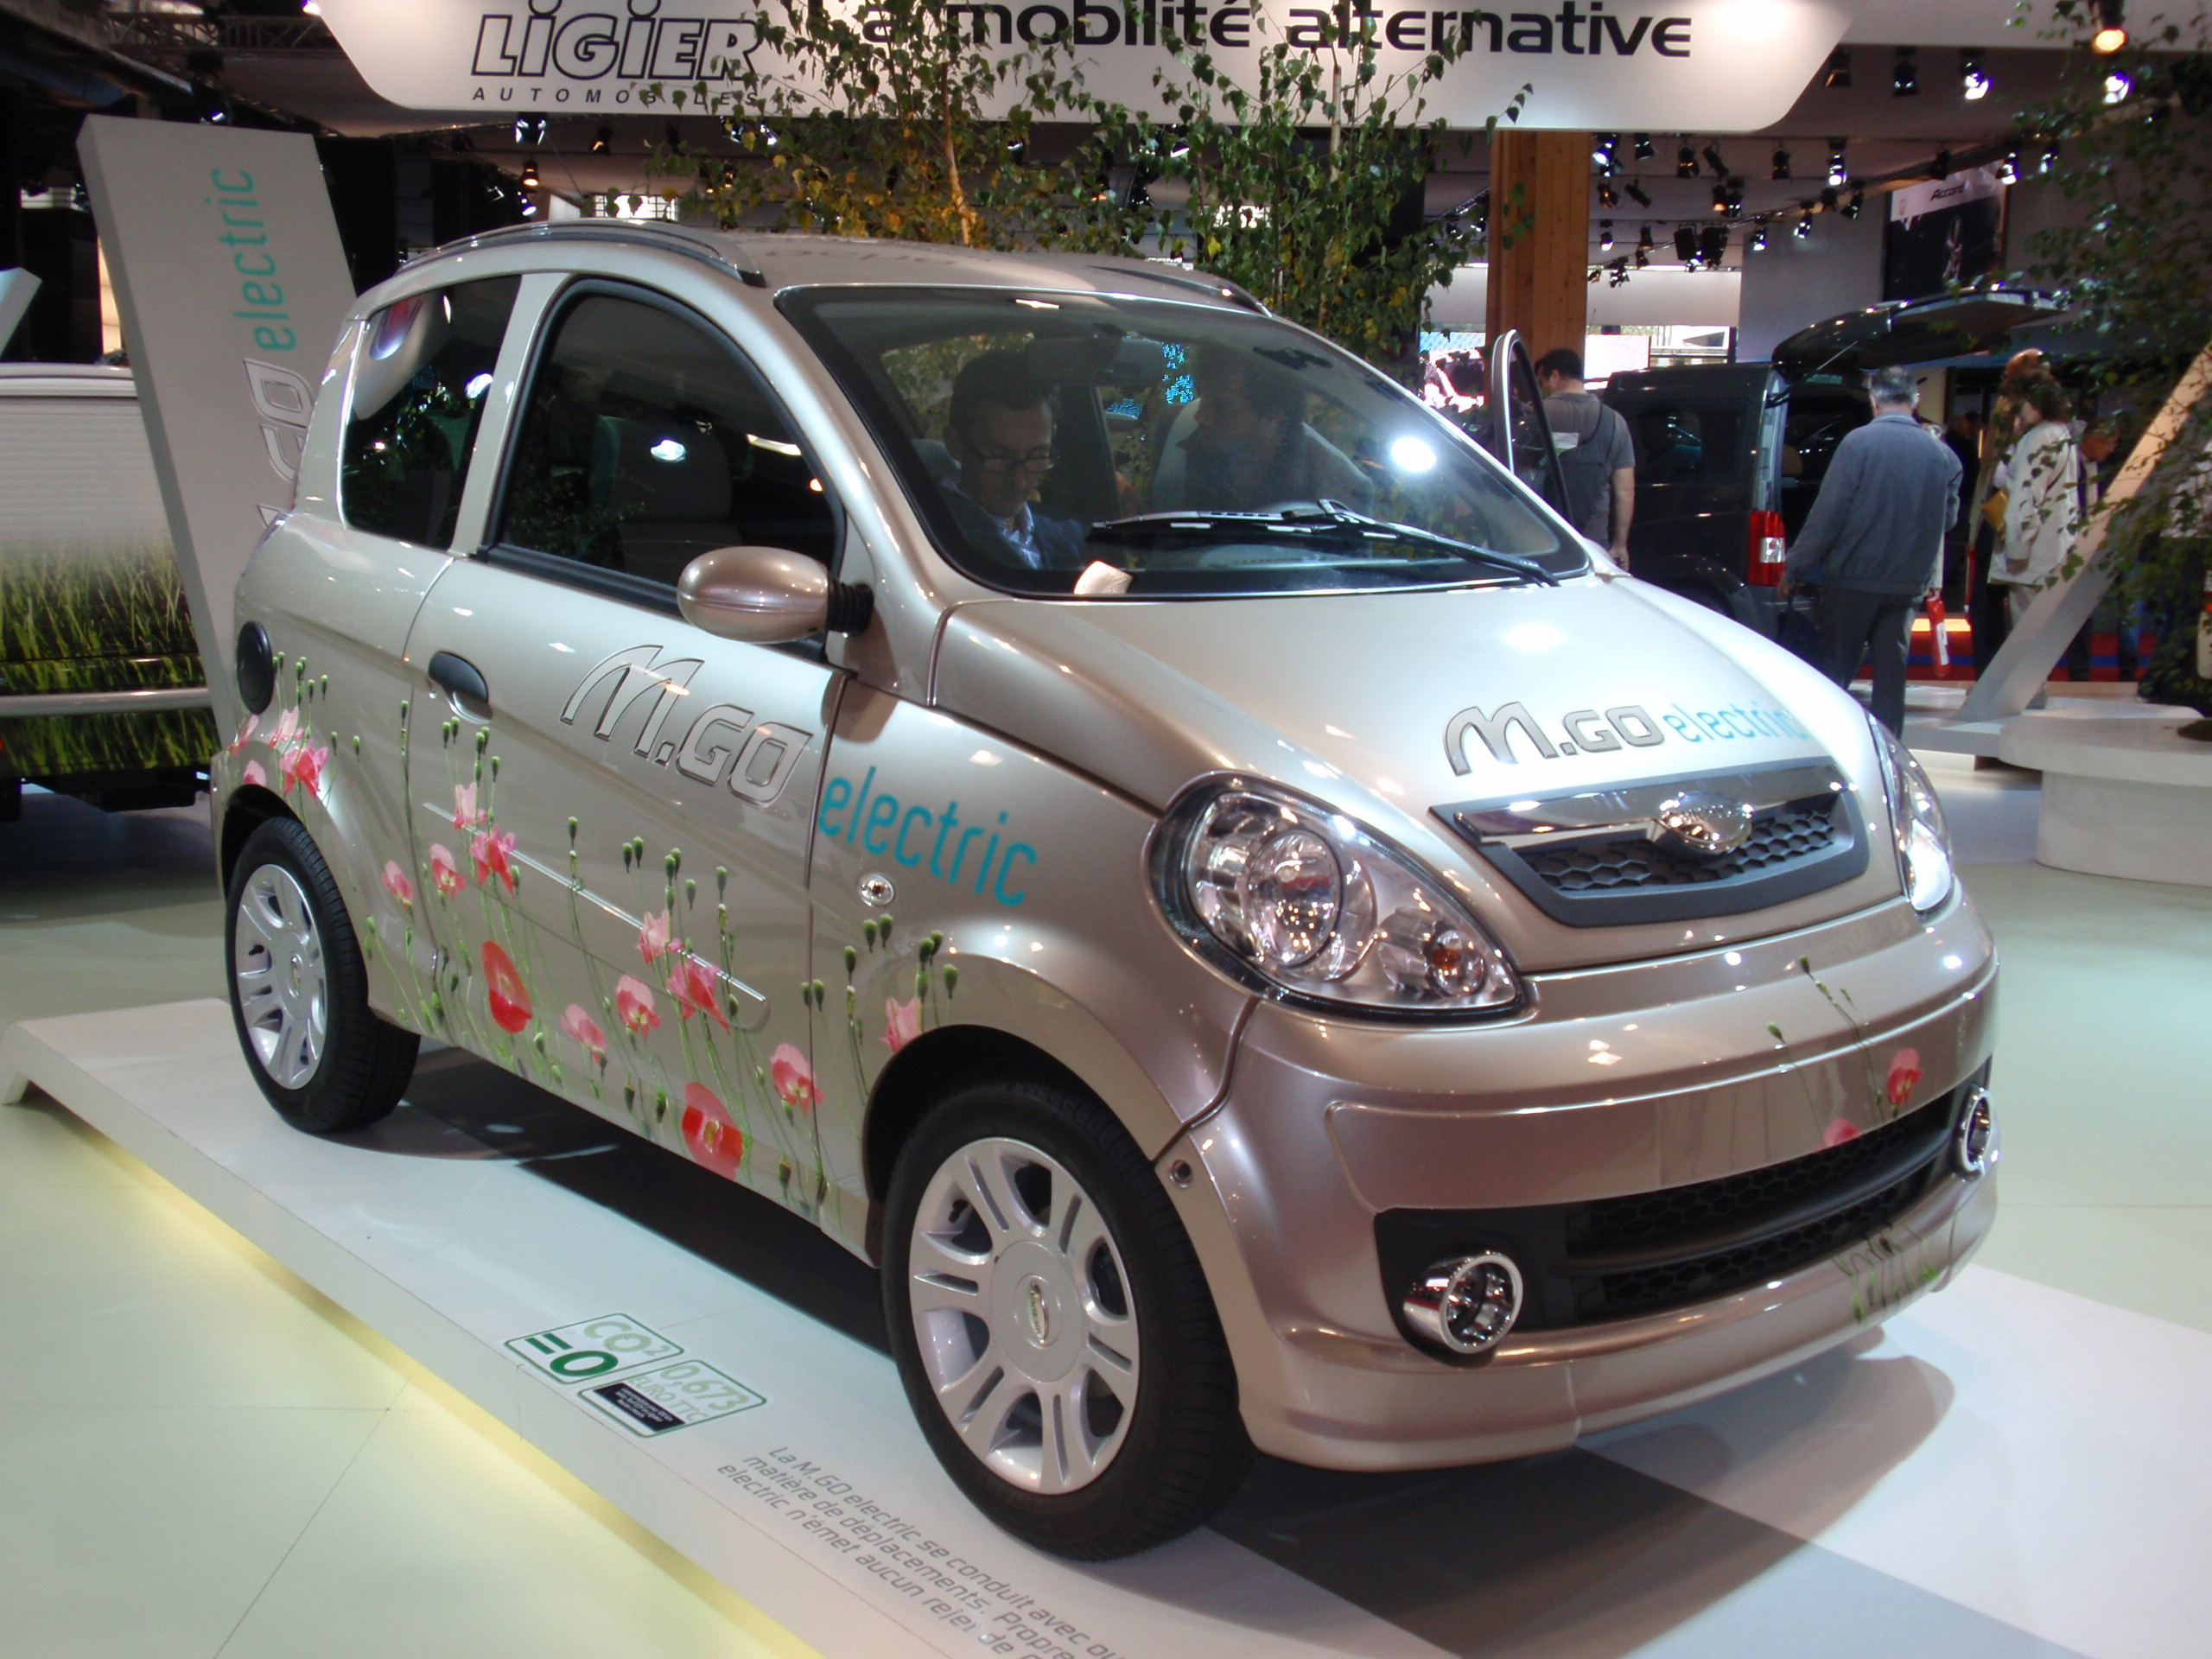 File:Microcar M.Go Electric 001.JPG - Wikimedia Commons